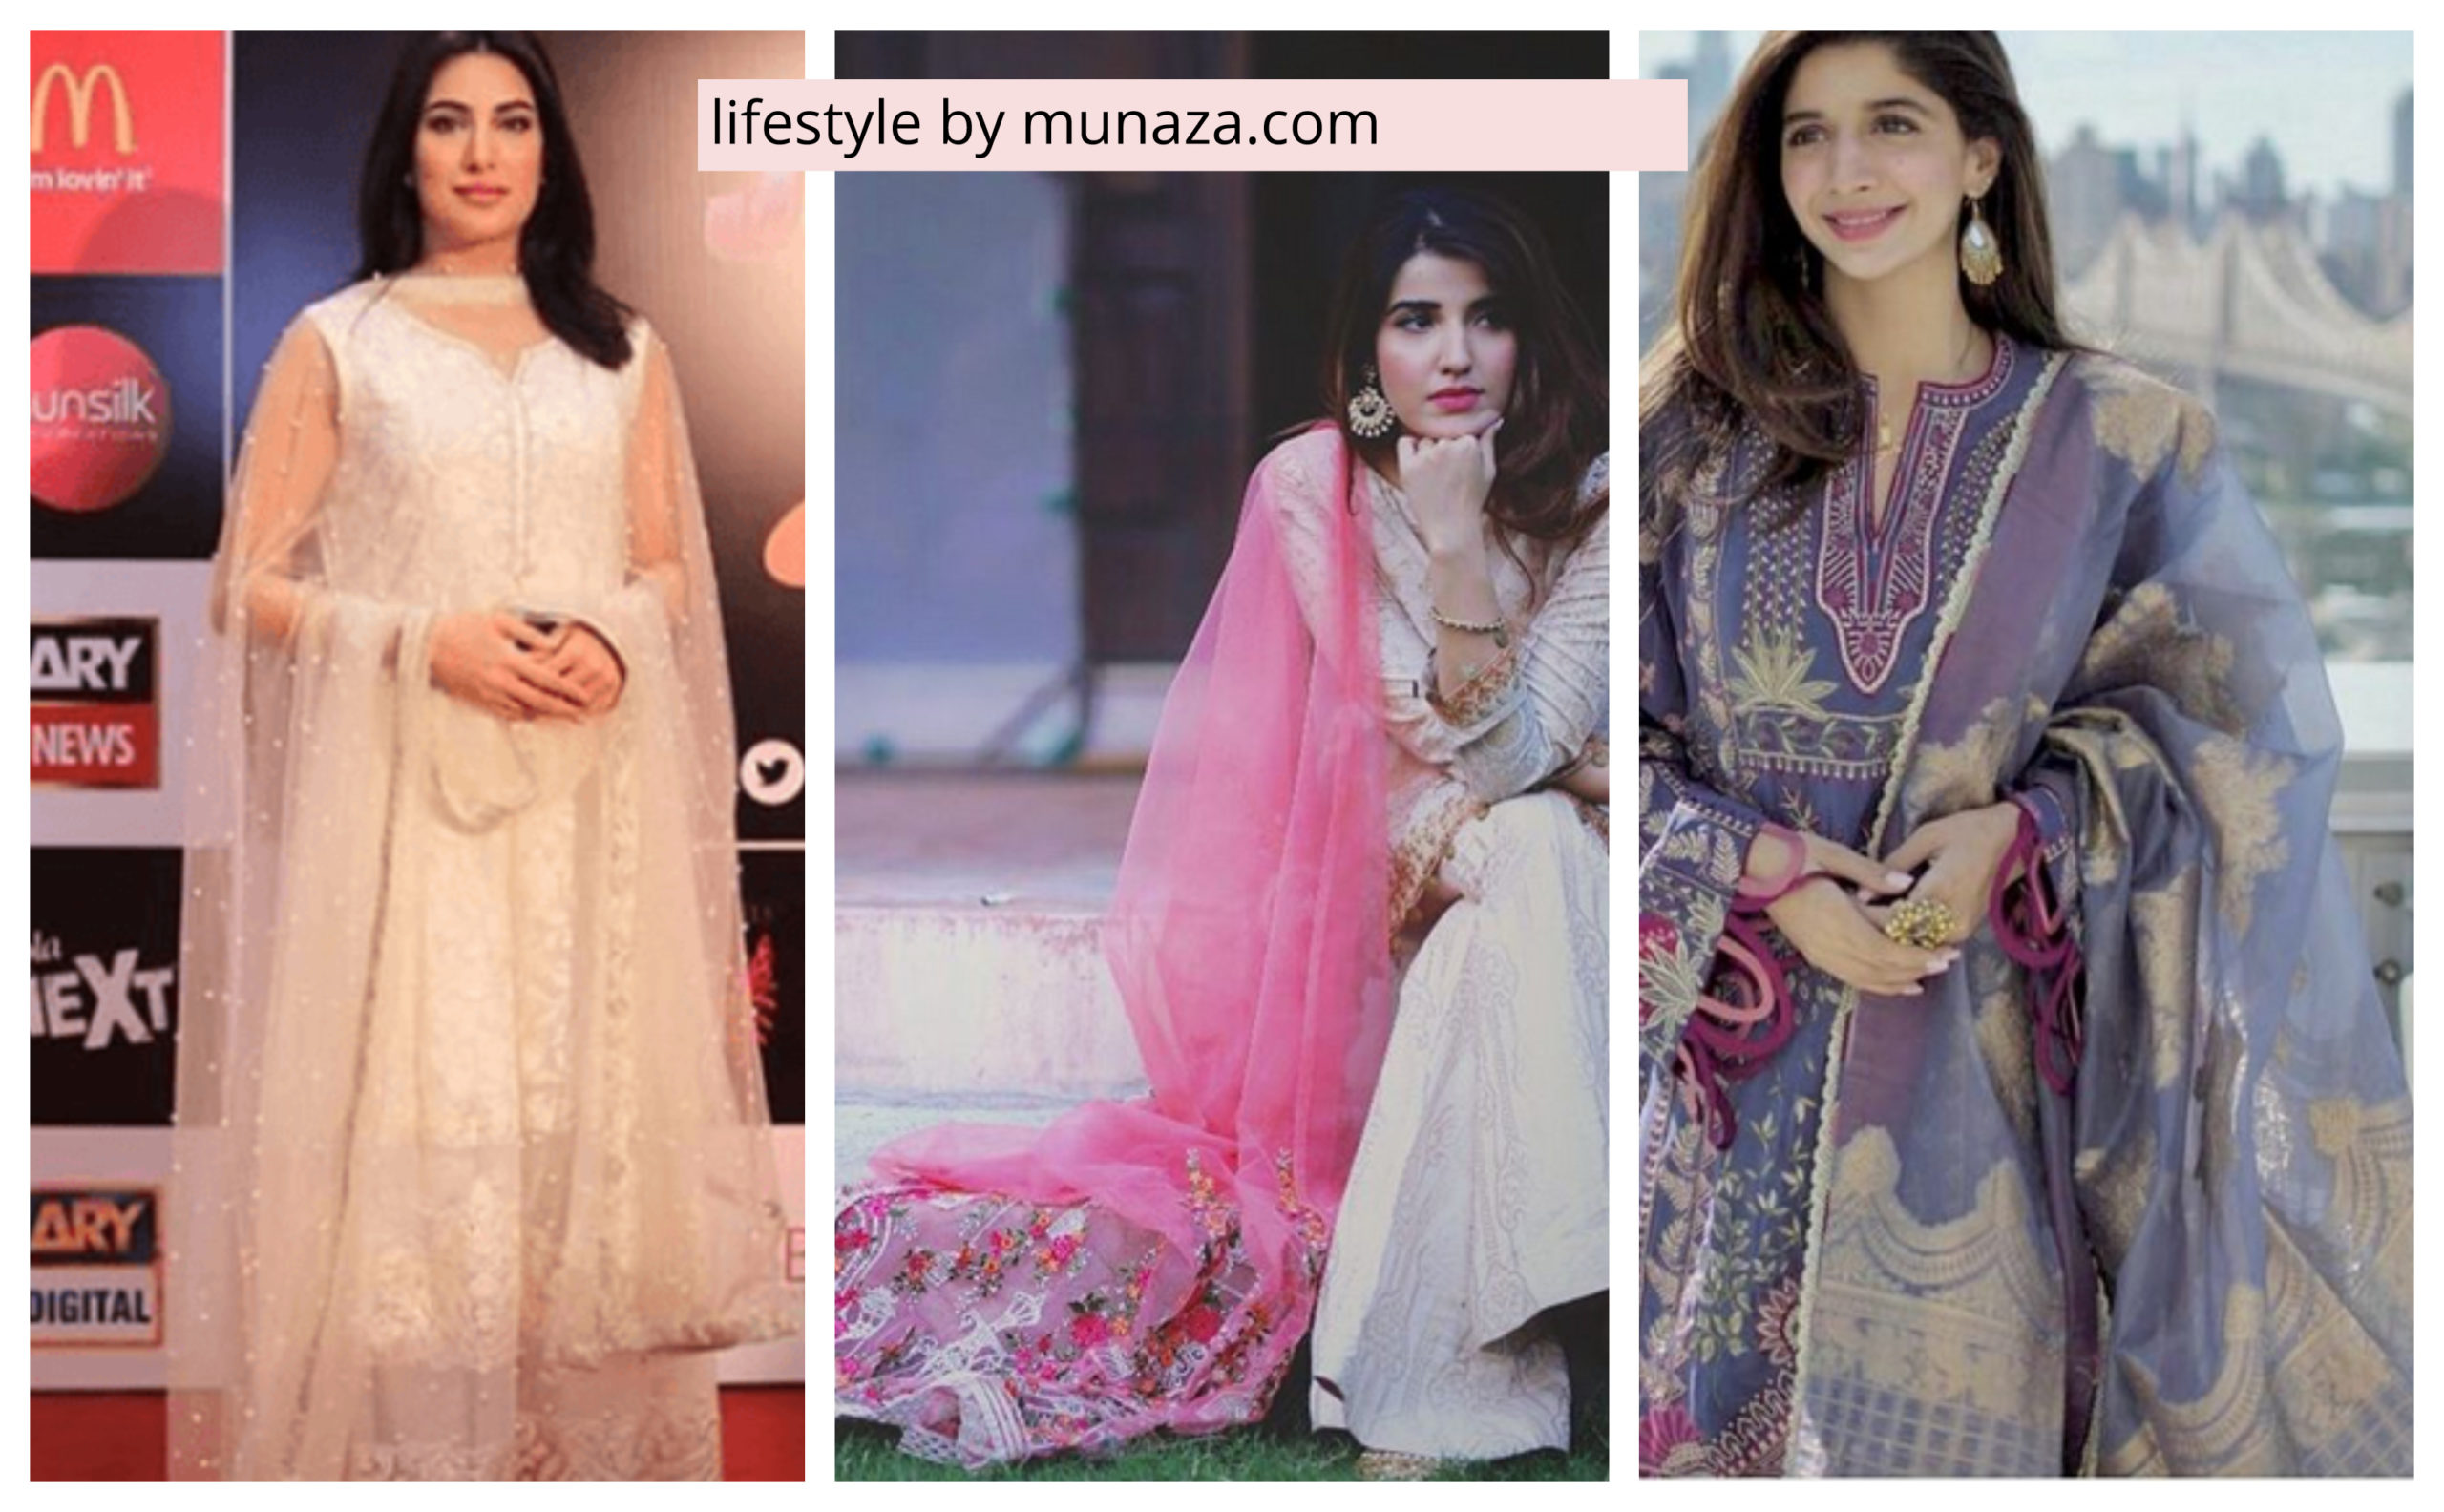 dupattas in trend- lifestyle by munaza